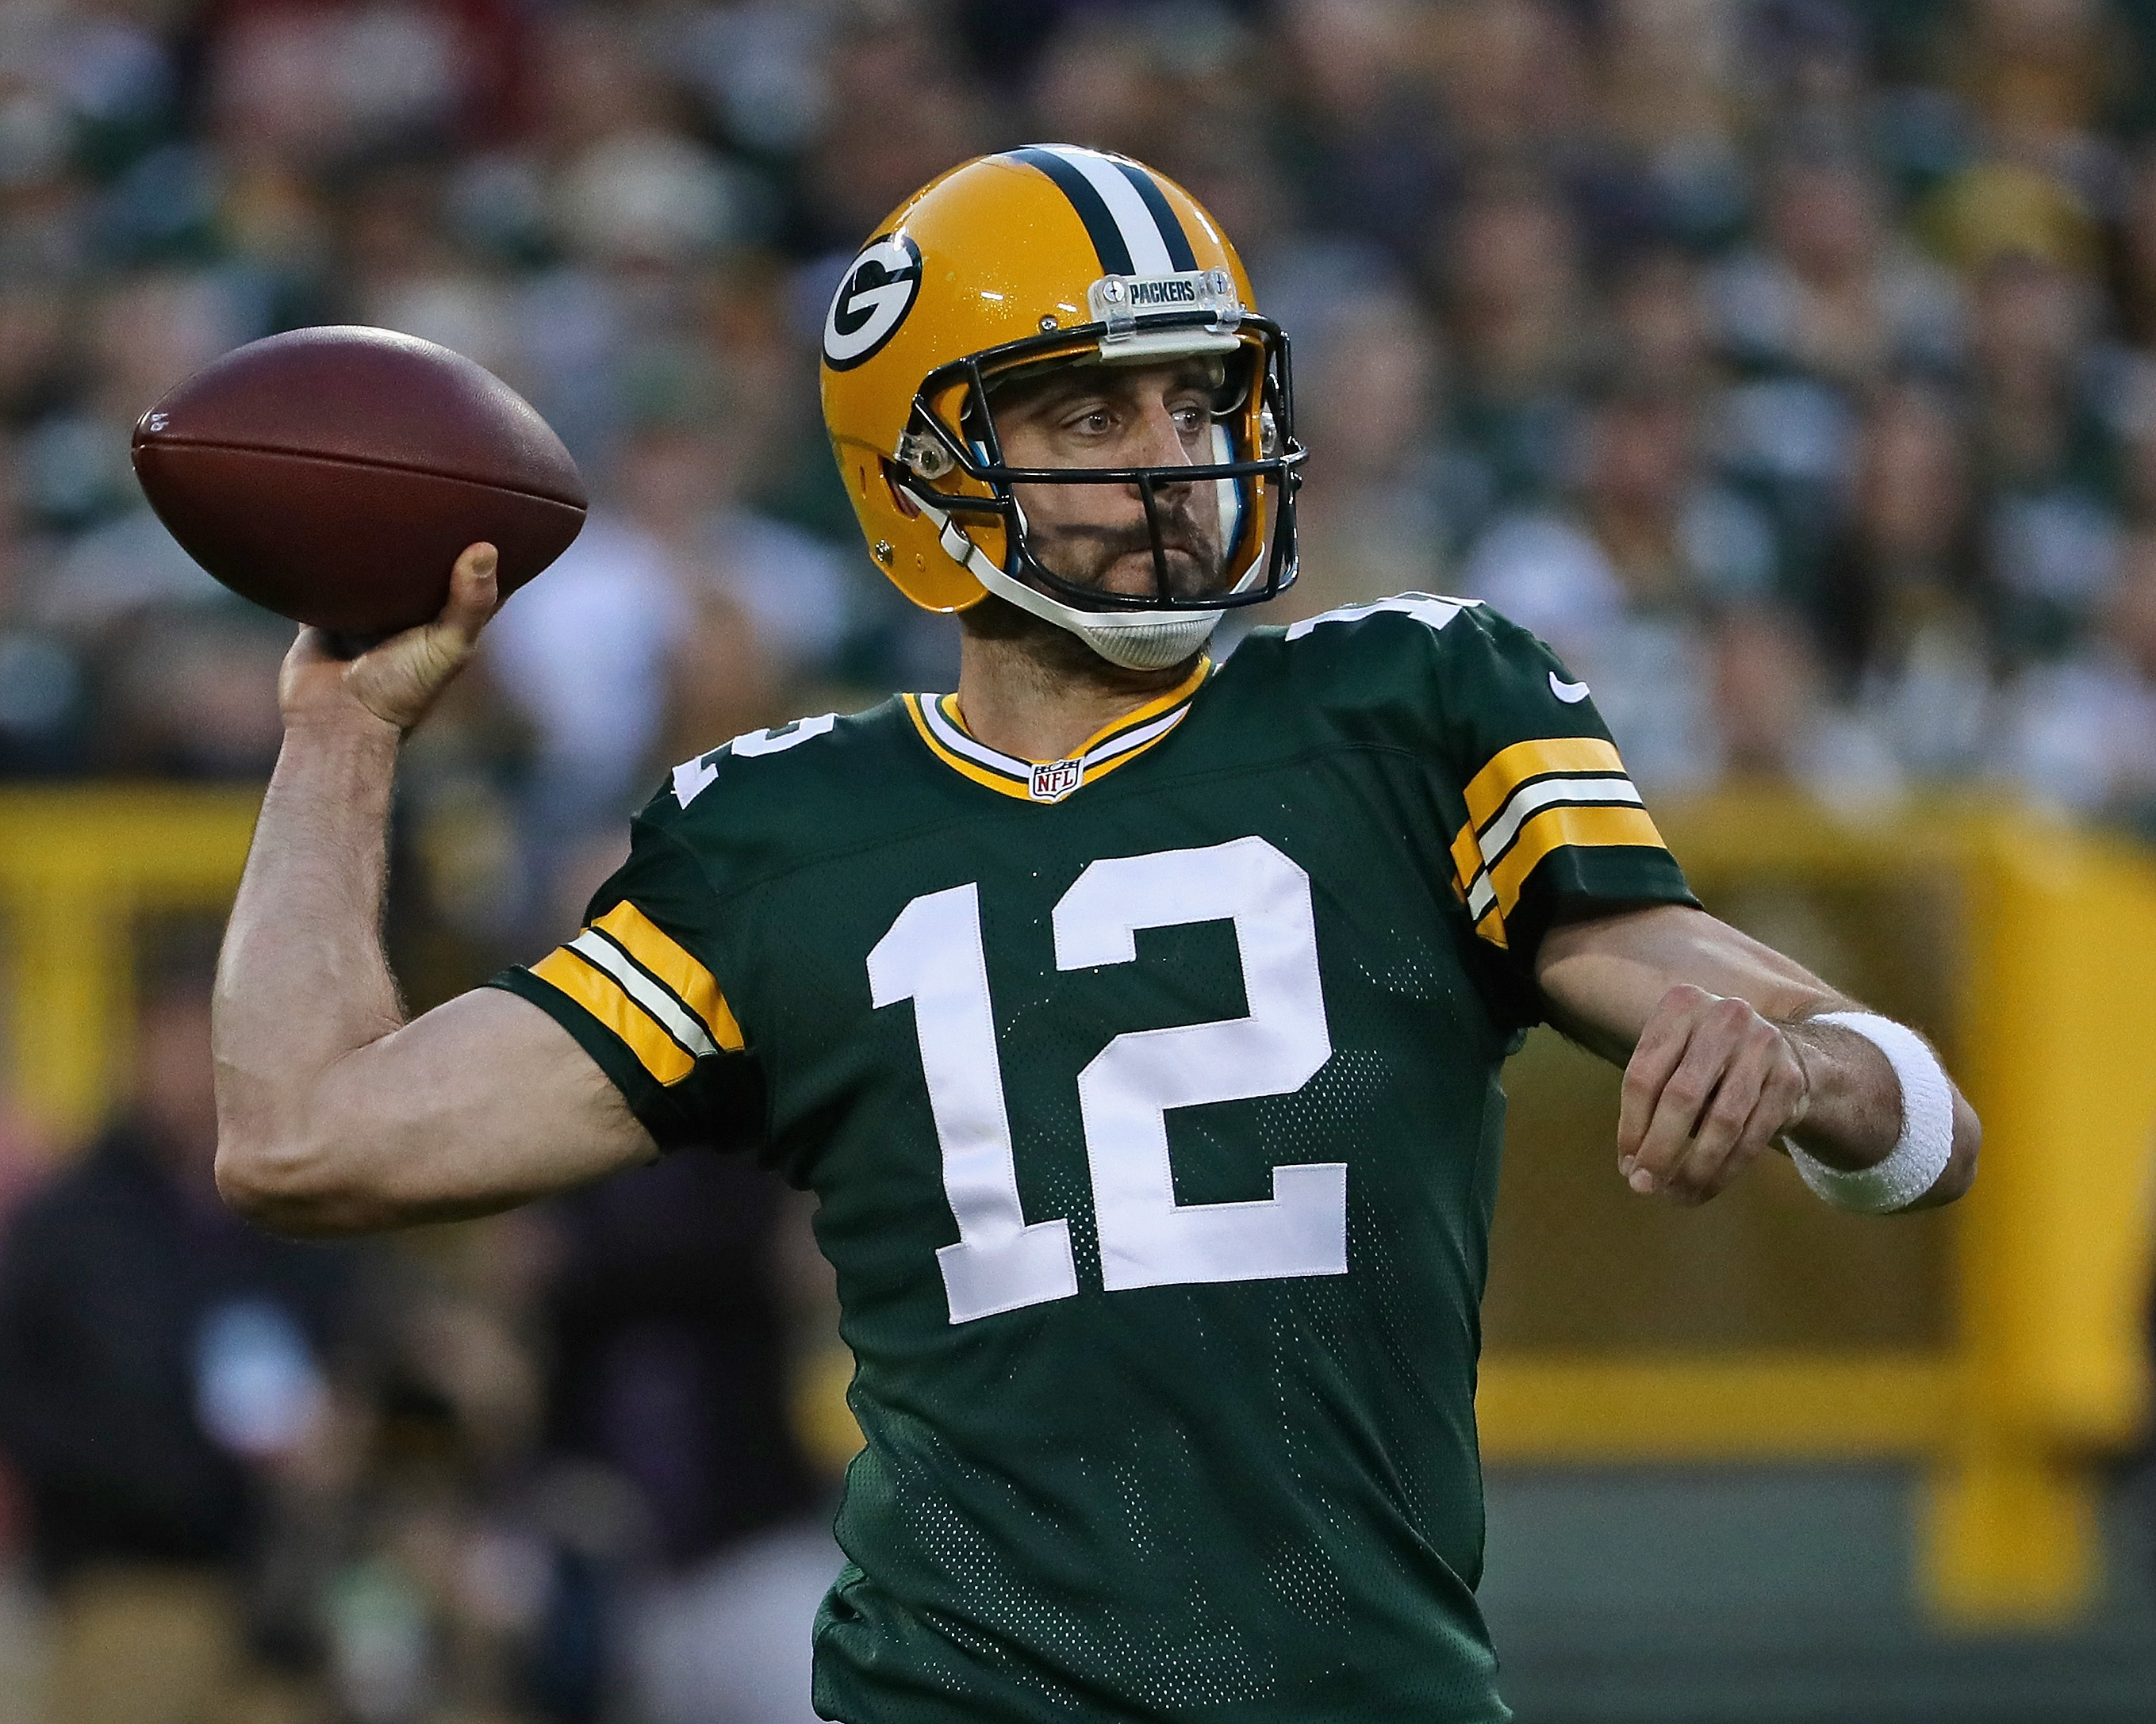 packers titans spread, packers titans odds, packers titans pick against the spread, packers titans who is favored, packers titans over under, packers titans odds today, packers titans vegas